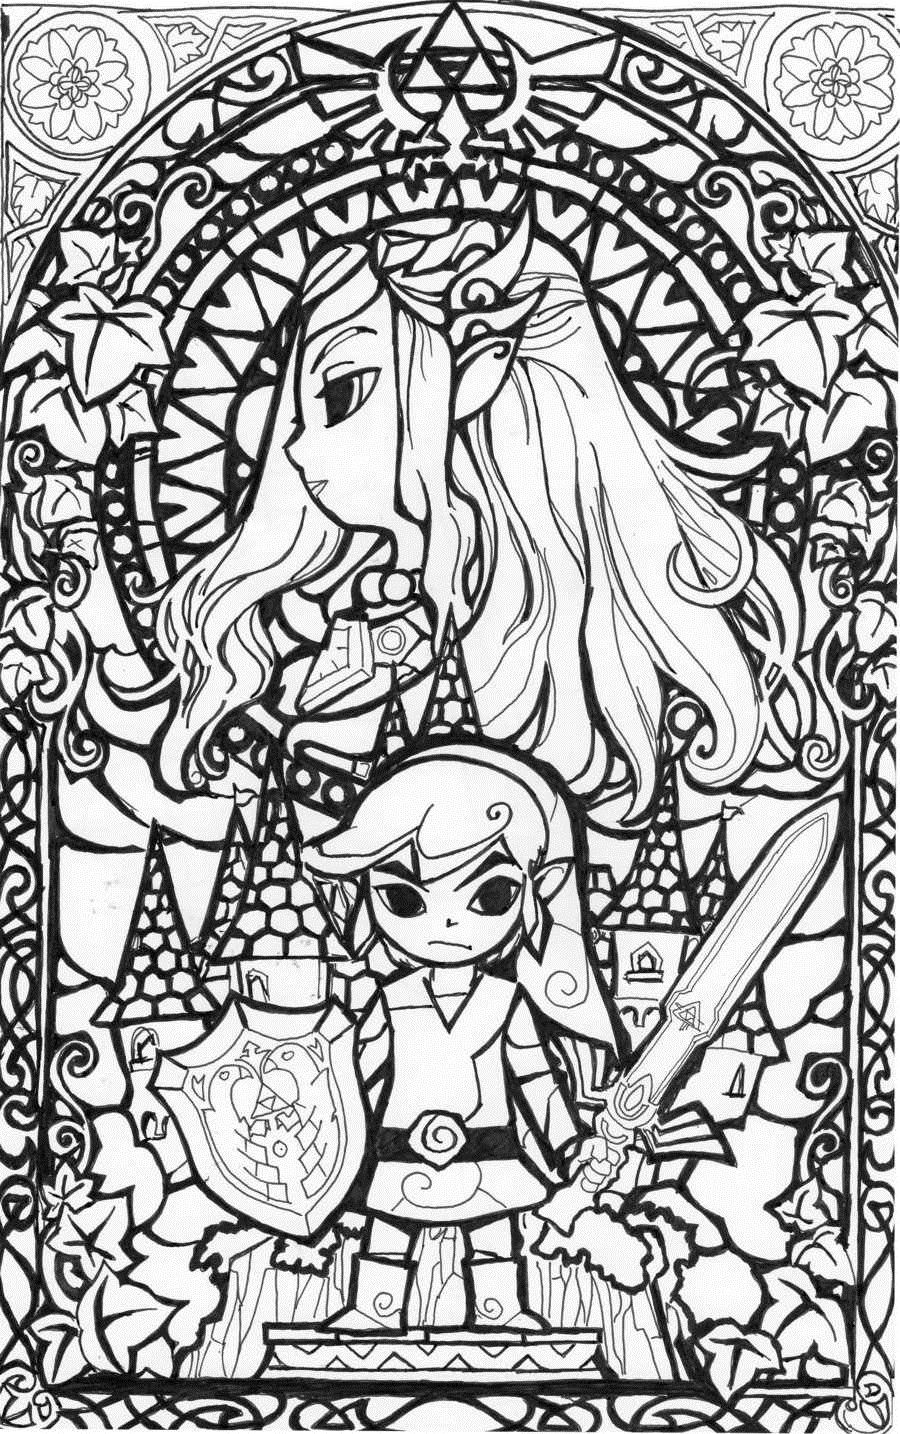 Legend of Zelda | Coloring pages for children at the library ...